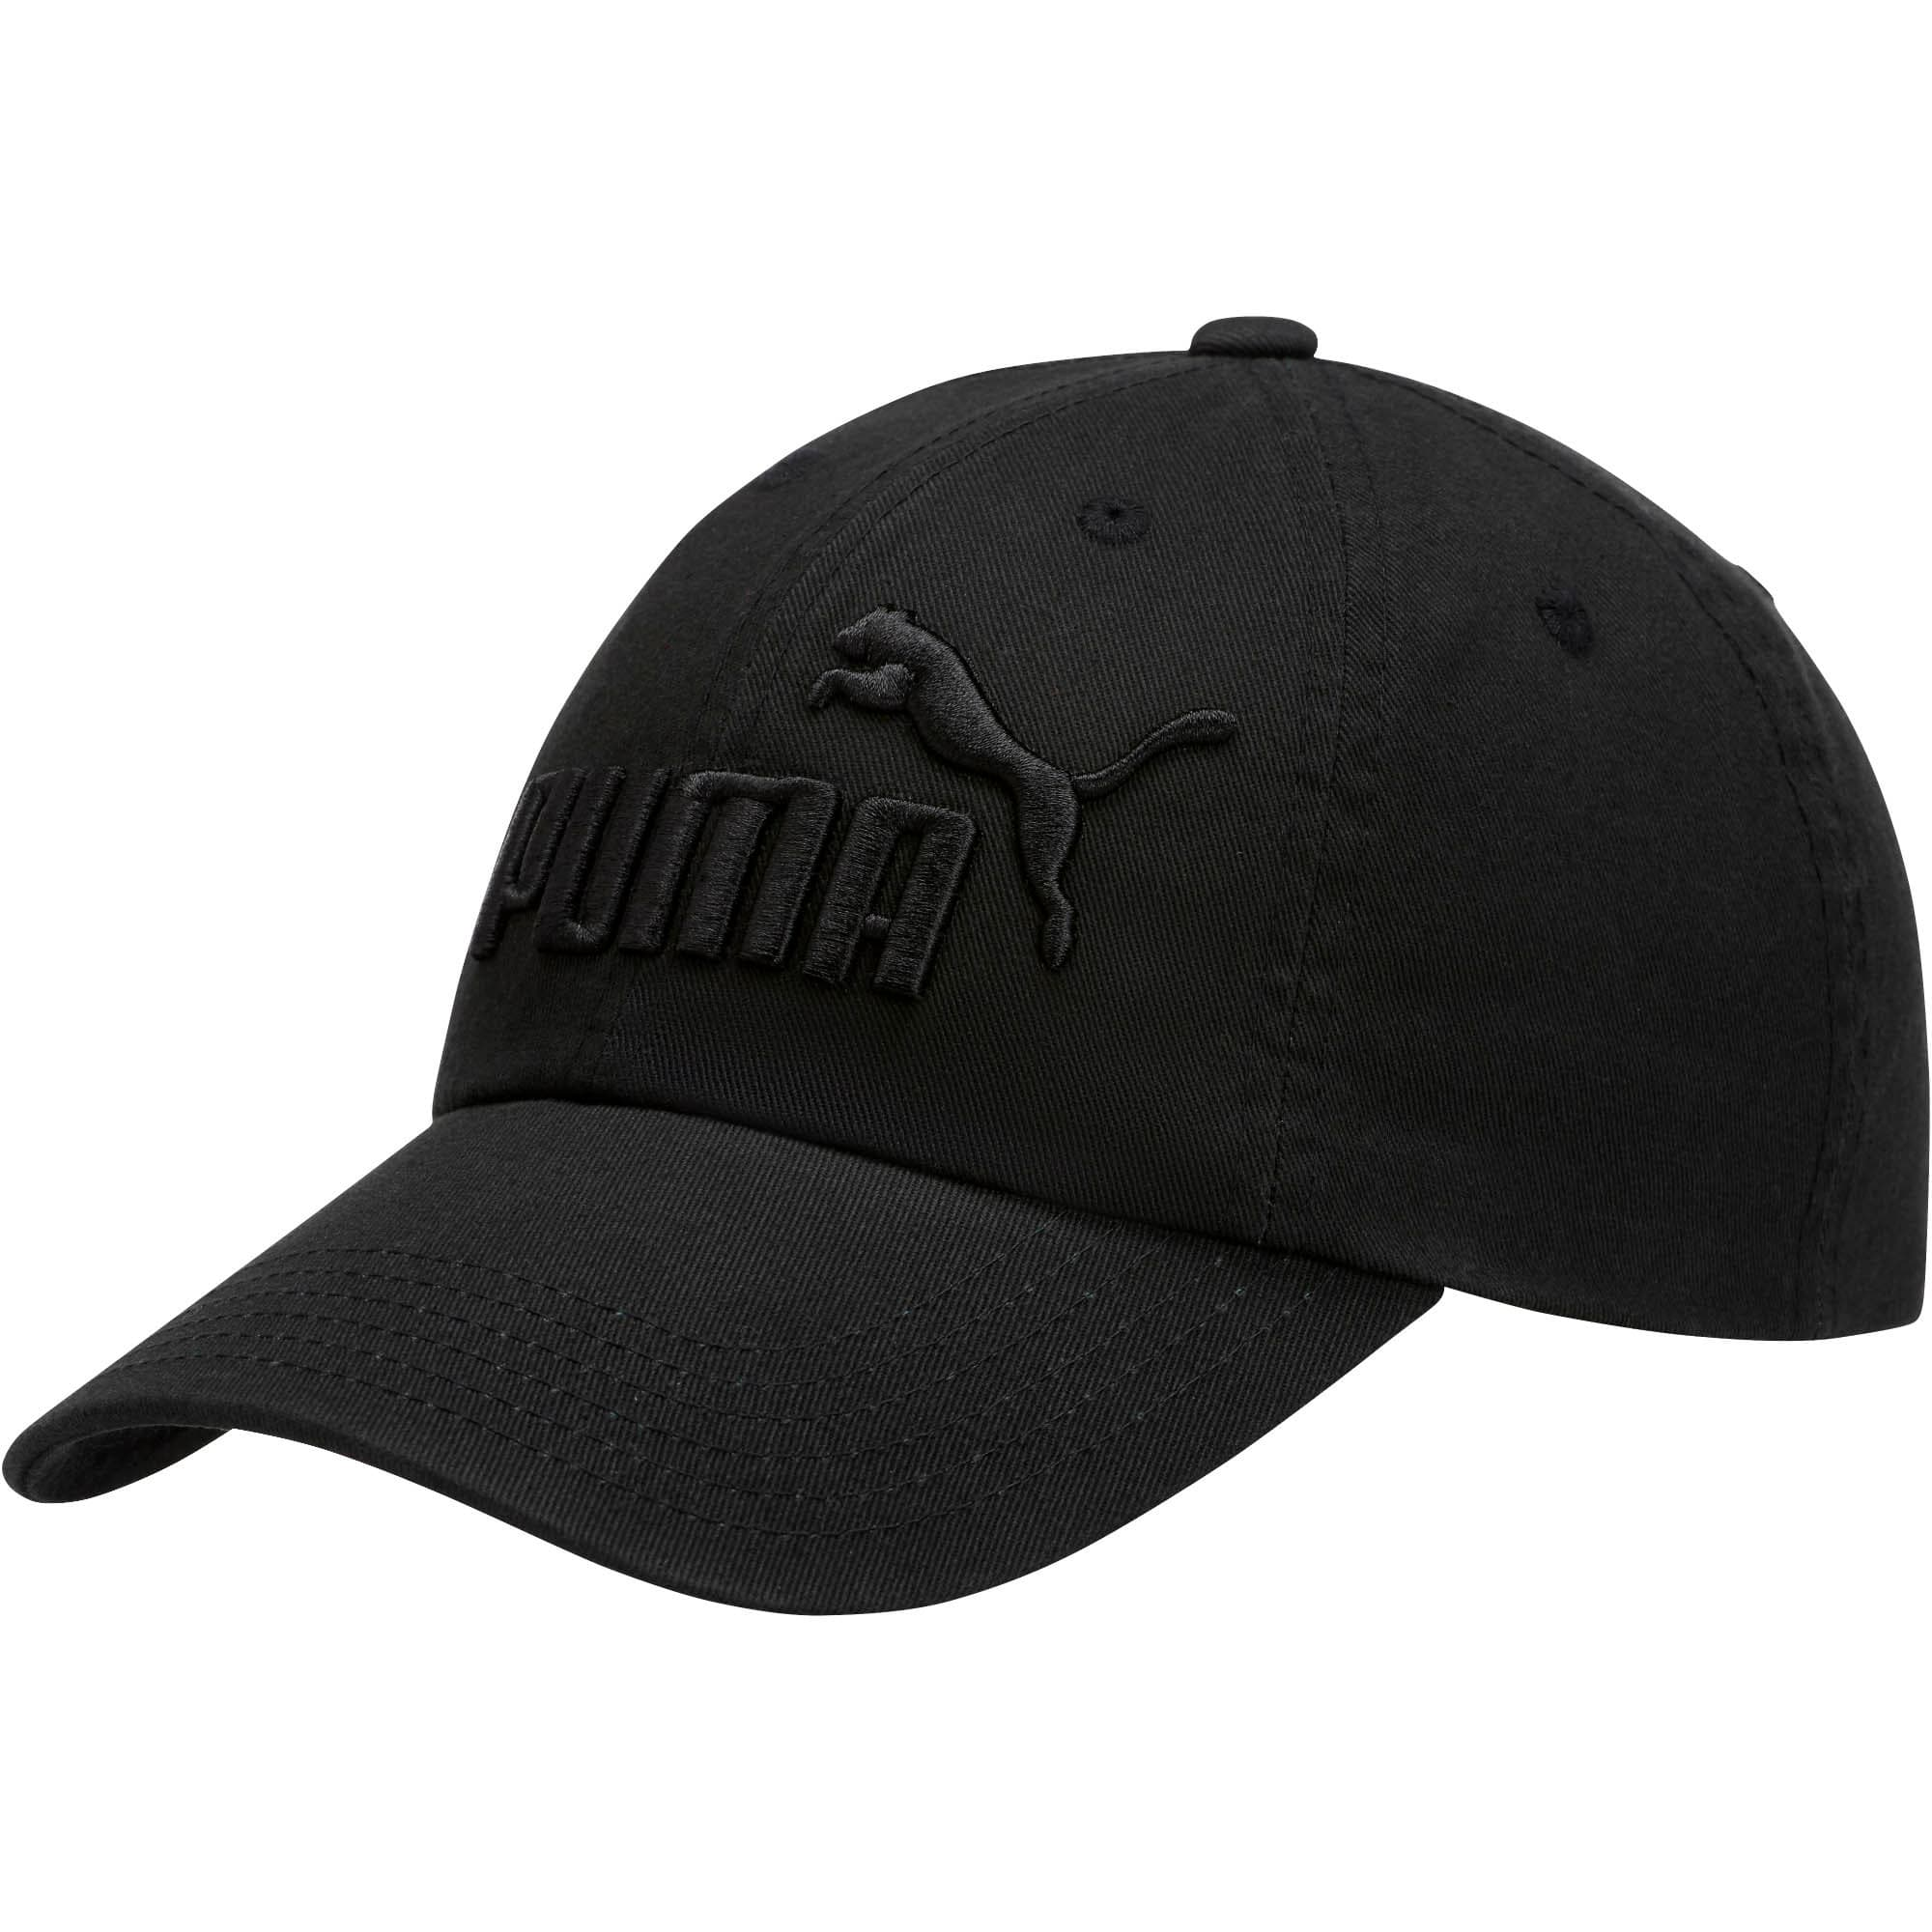 Thumbnail 1 of PUMA #1 Relaxed Fit Adjustable Hat, Black, medium